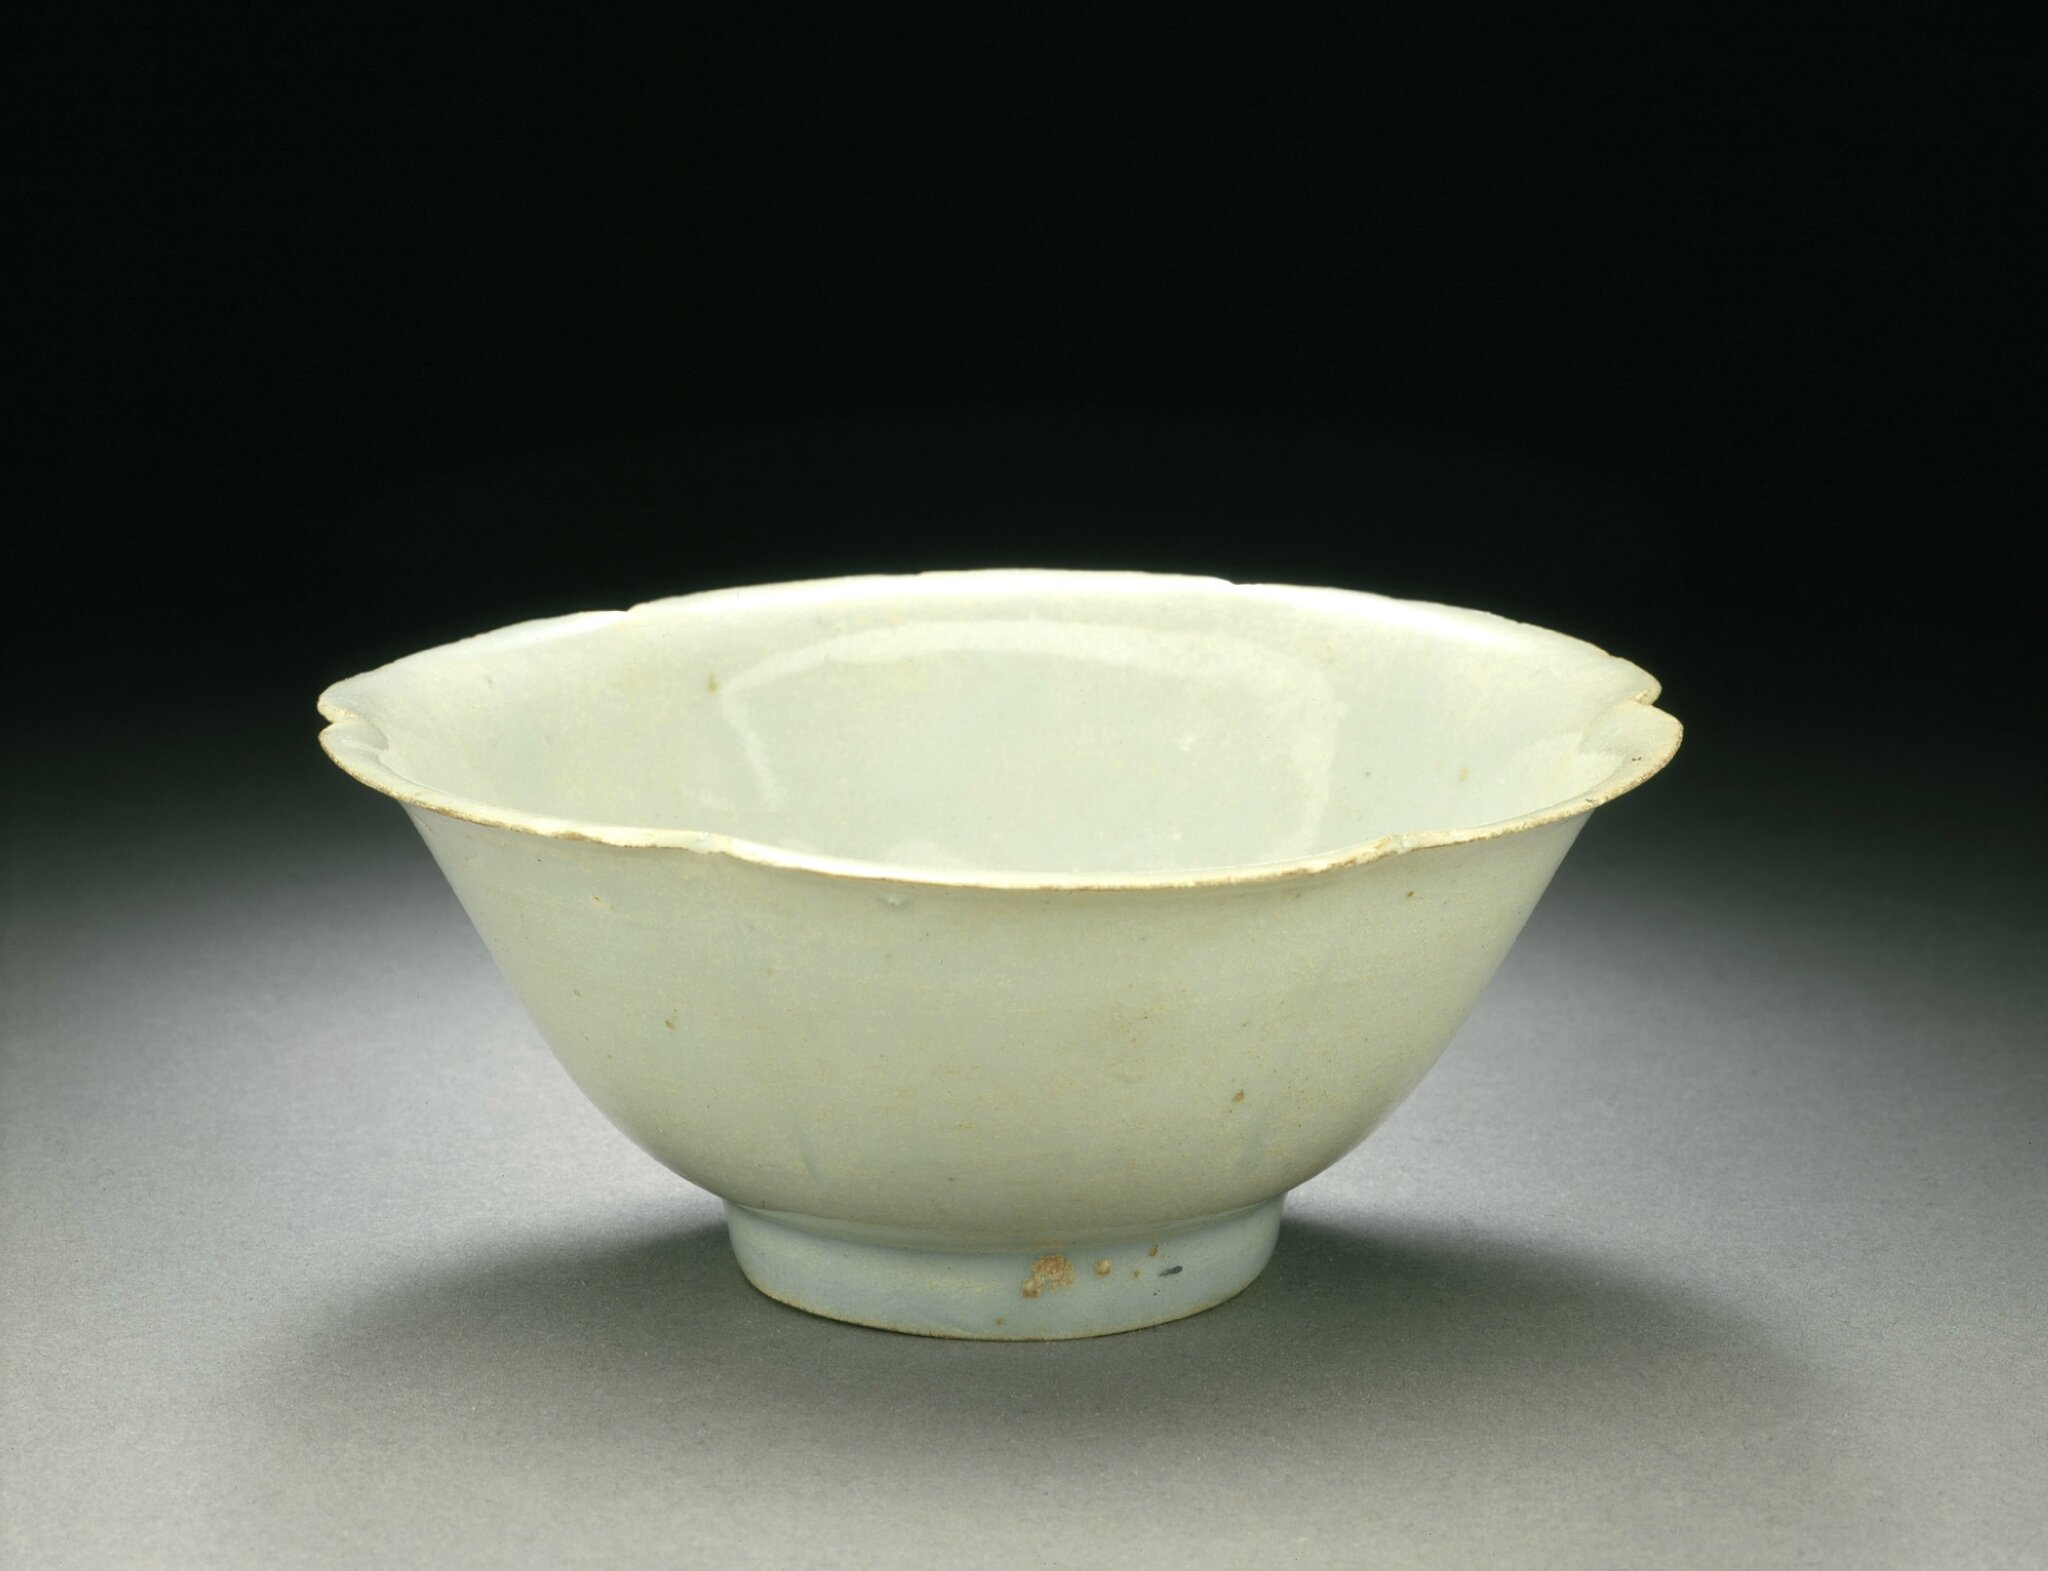 Bowl (Wan) in the Form of a Plum Blossom, late Northern Song dynasty or early Southern Song dynasty, about 1100-1200,